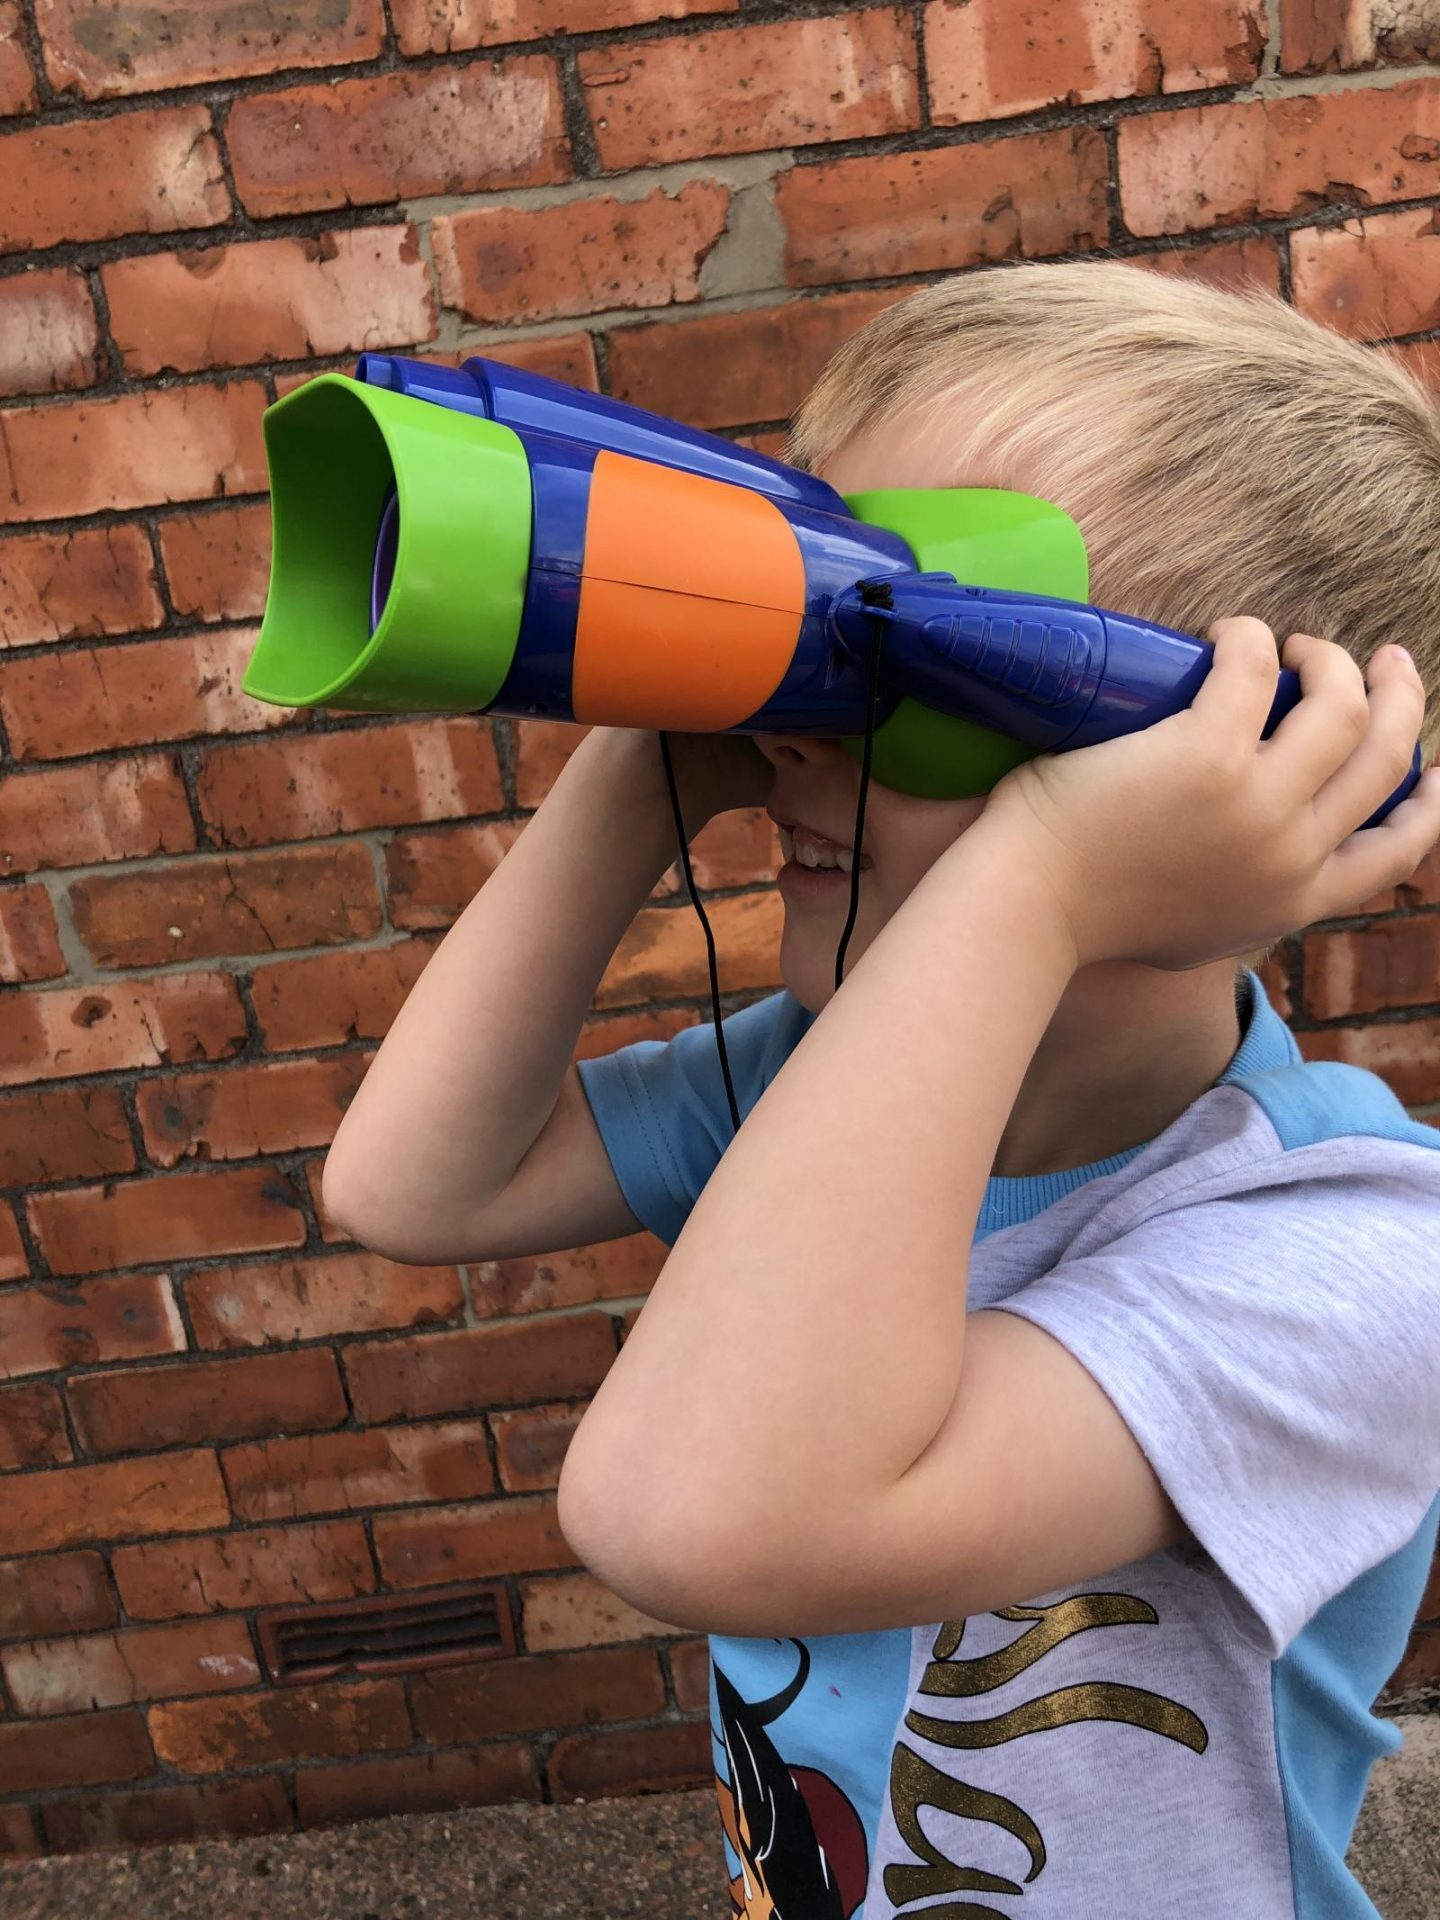 geosafari jr kidnoculars extreme bricks behind